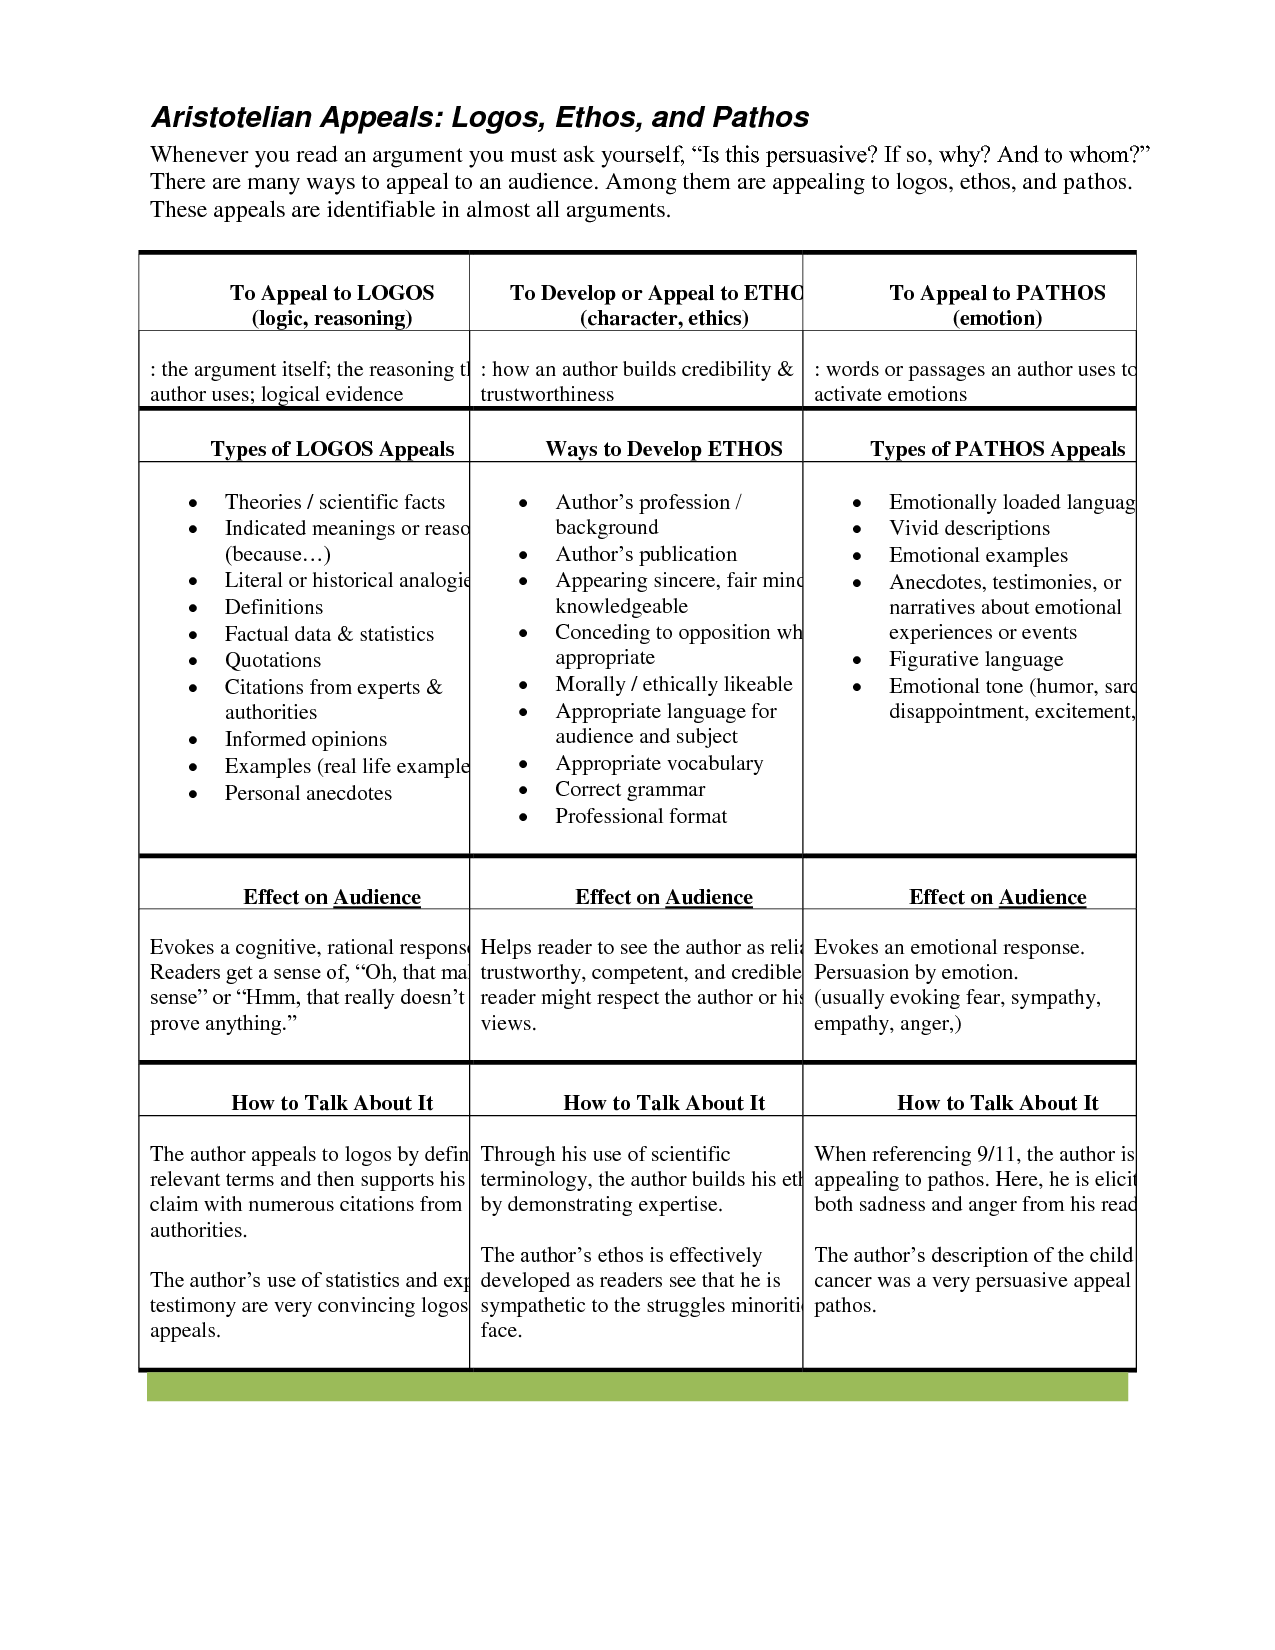 Worksheets Ethos Pathos Logos Worksheet 1000 images about ethospathoslogos on pinterest logos rhetorical device and t youtube